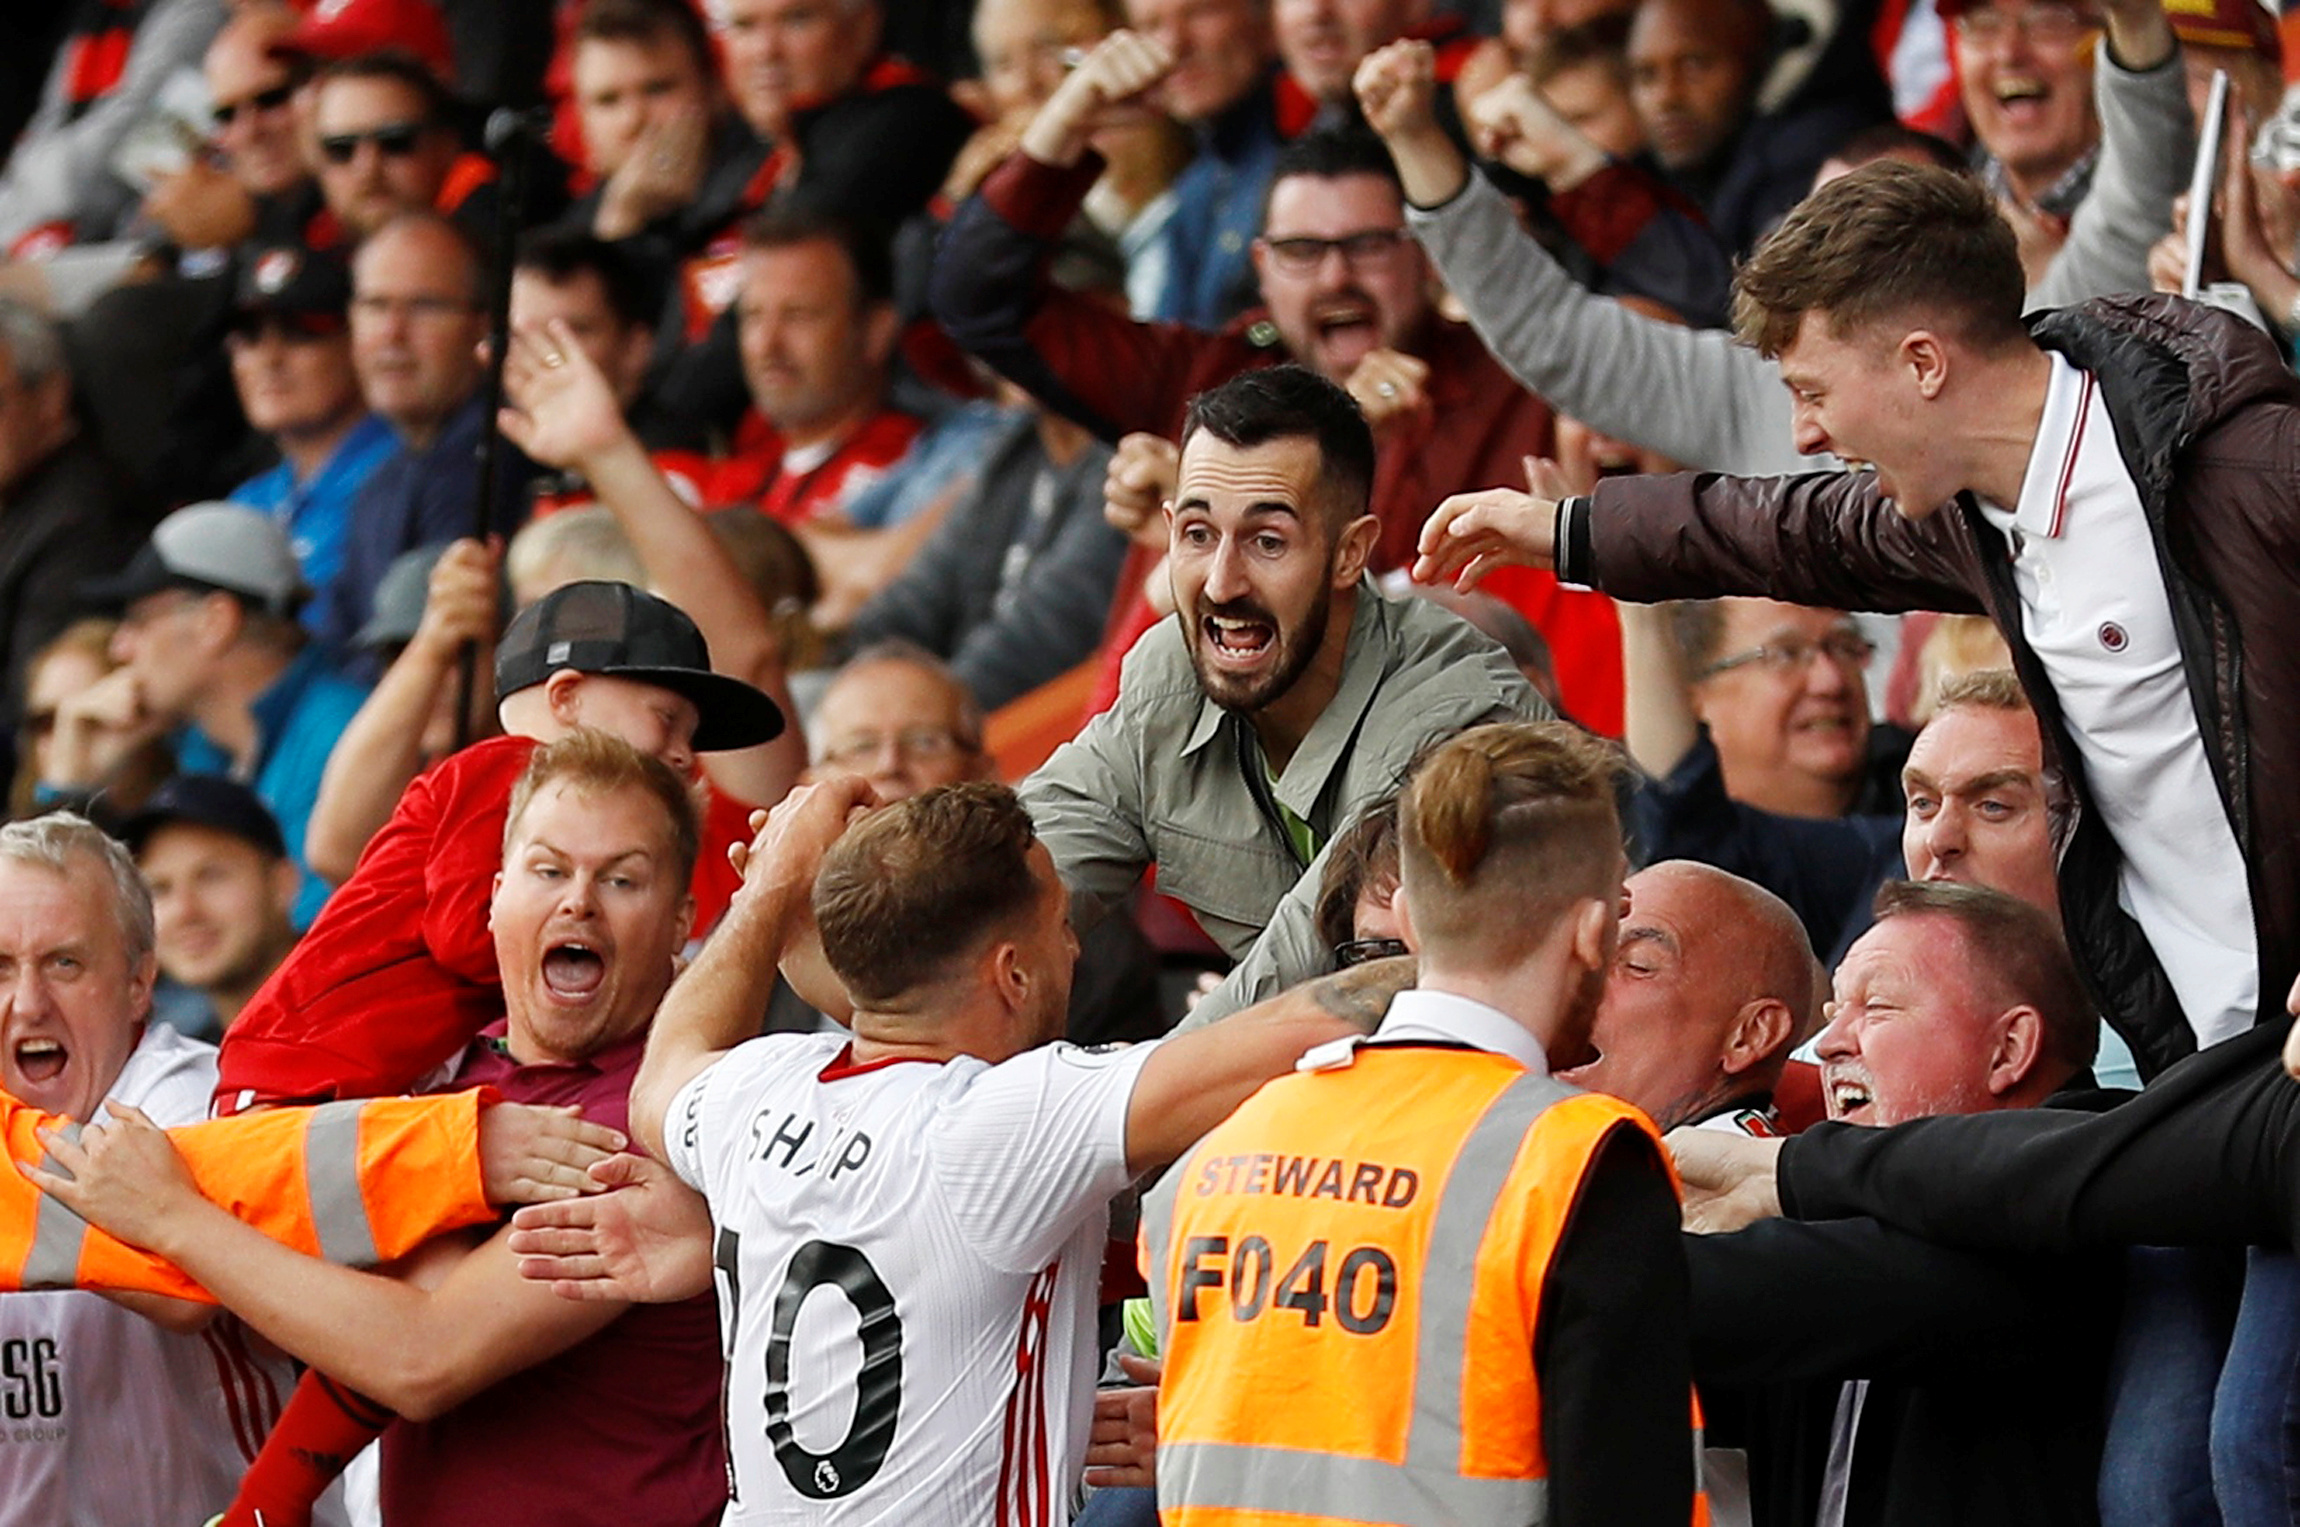 Bournemouth v Sheffield United live in the Premier League - Live